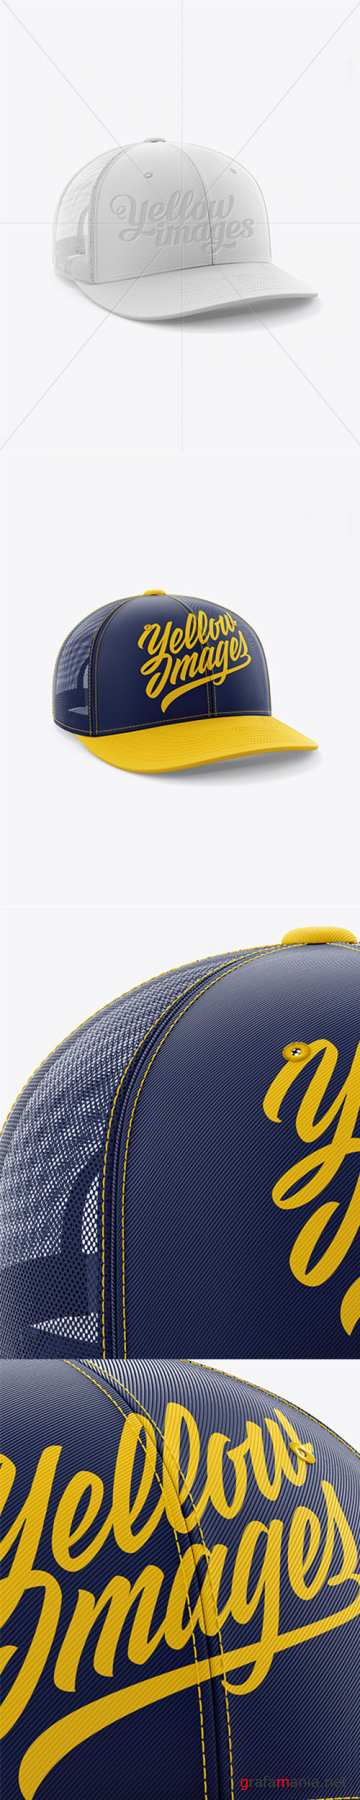 Trucker Cap Mockup - Half Side View 18717 TIF